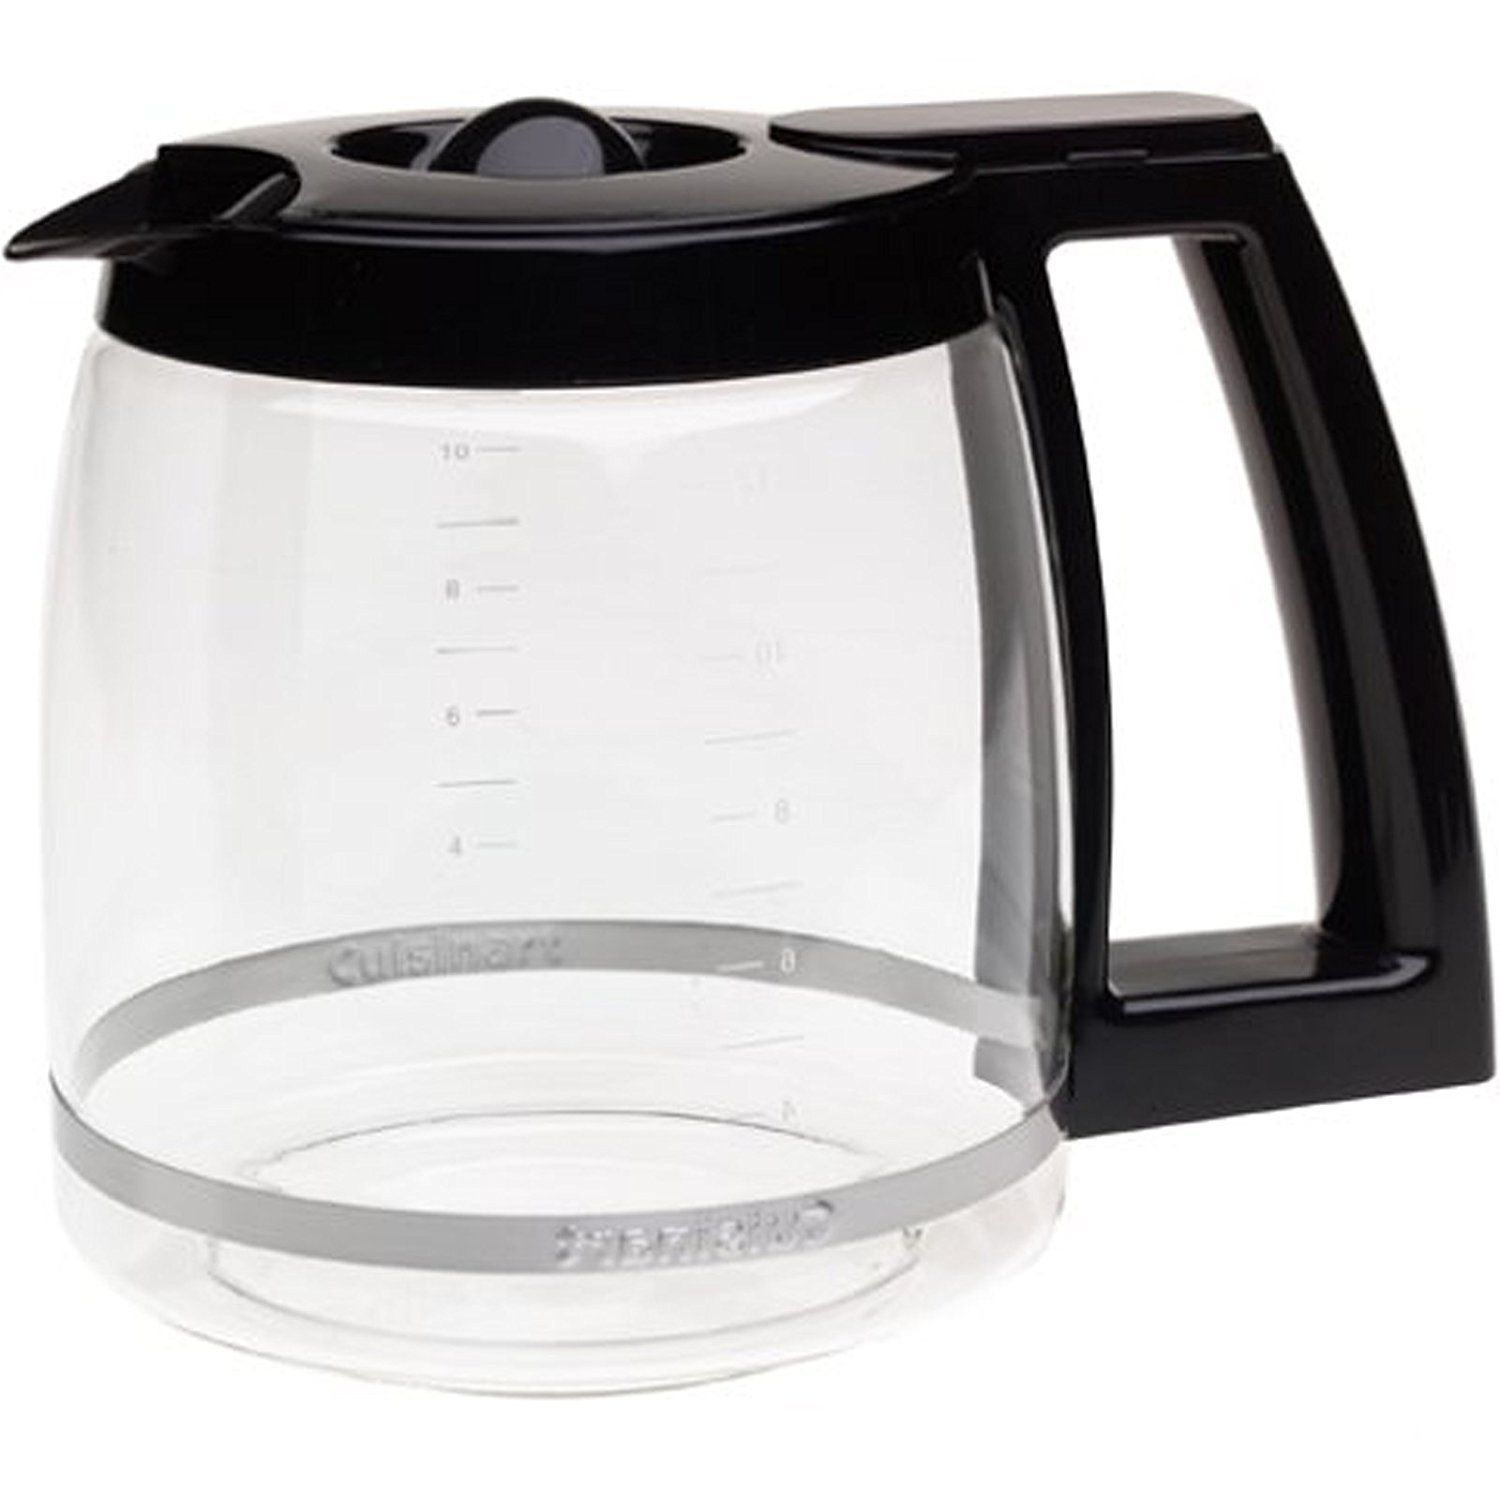 Details about Replacement Coffee Maker Machine Glass